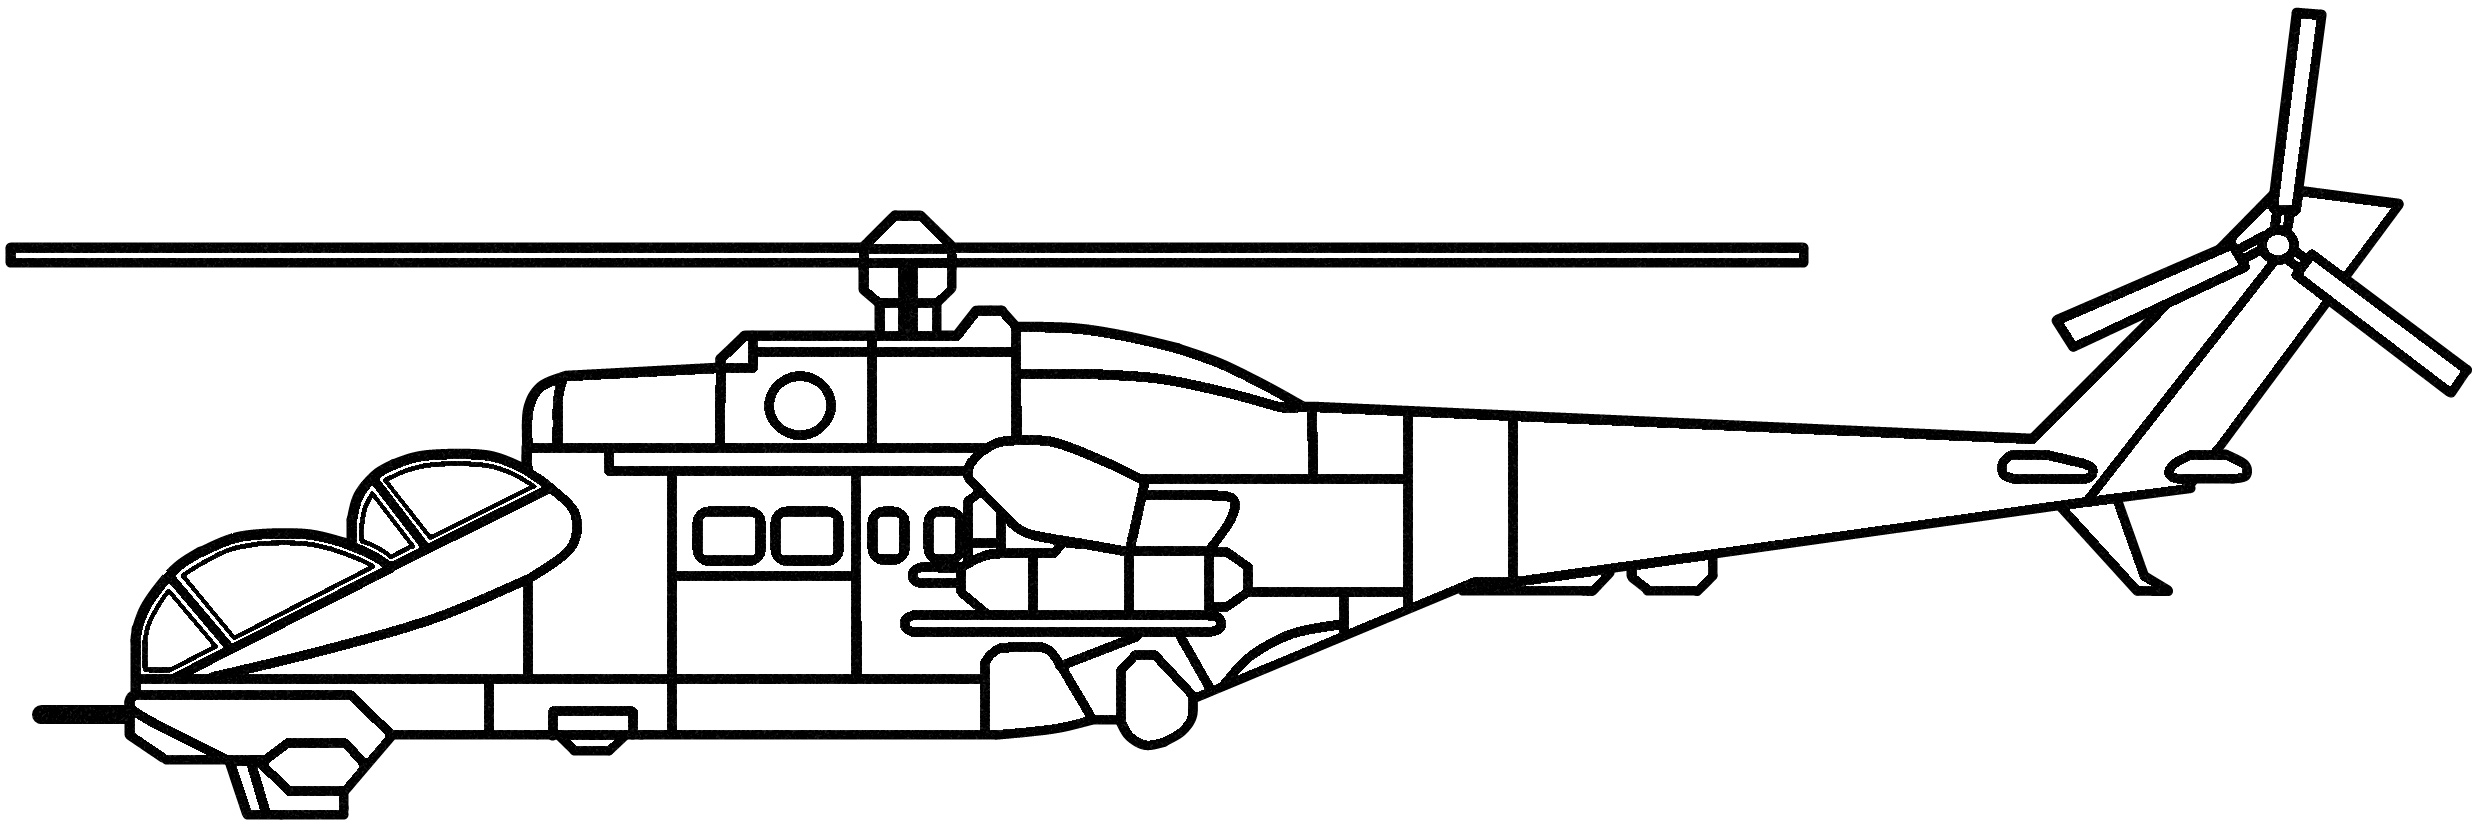 helicopter printable army helicopter colouring in pictures for kidsfree helicopter printable